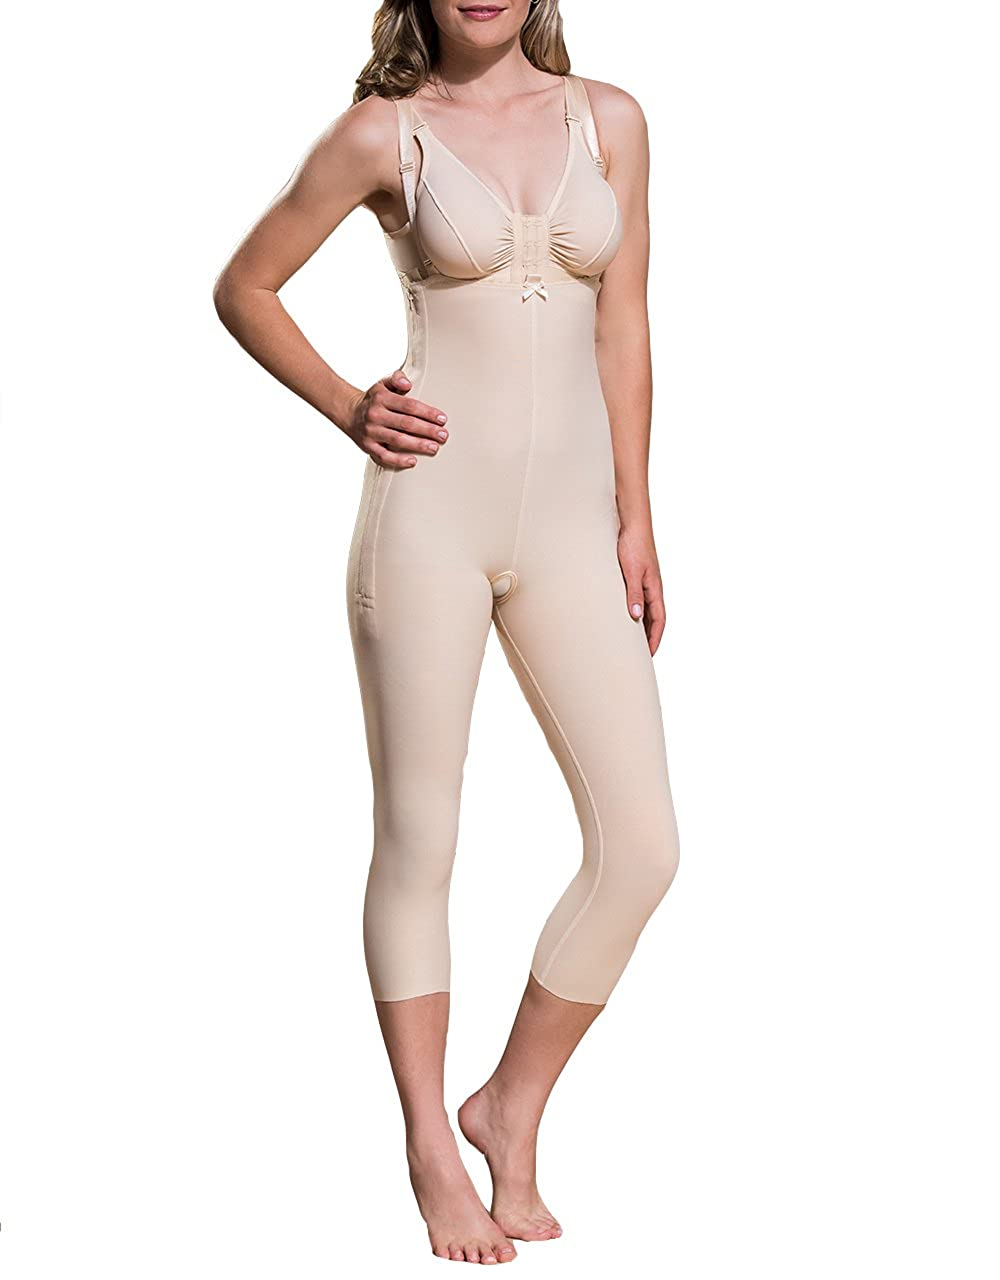 ee0ee99a6e ComfortWear Marena Support Girdle with Suspenders and Medium Legs at Amazon  Women s Clothing store